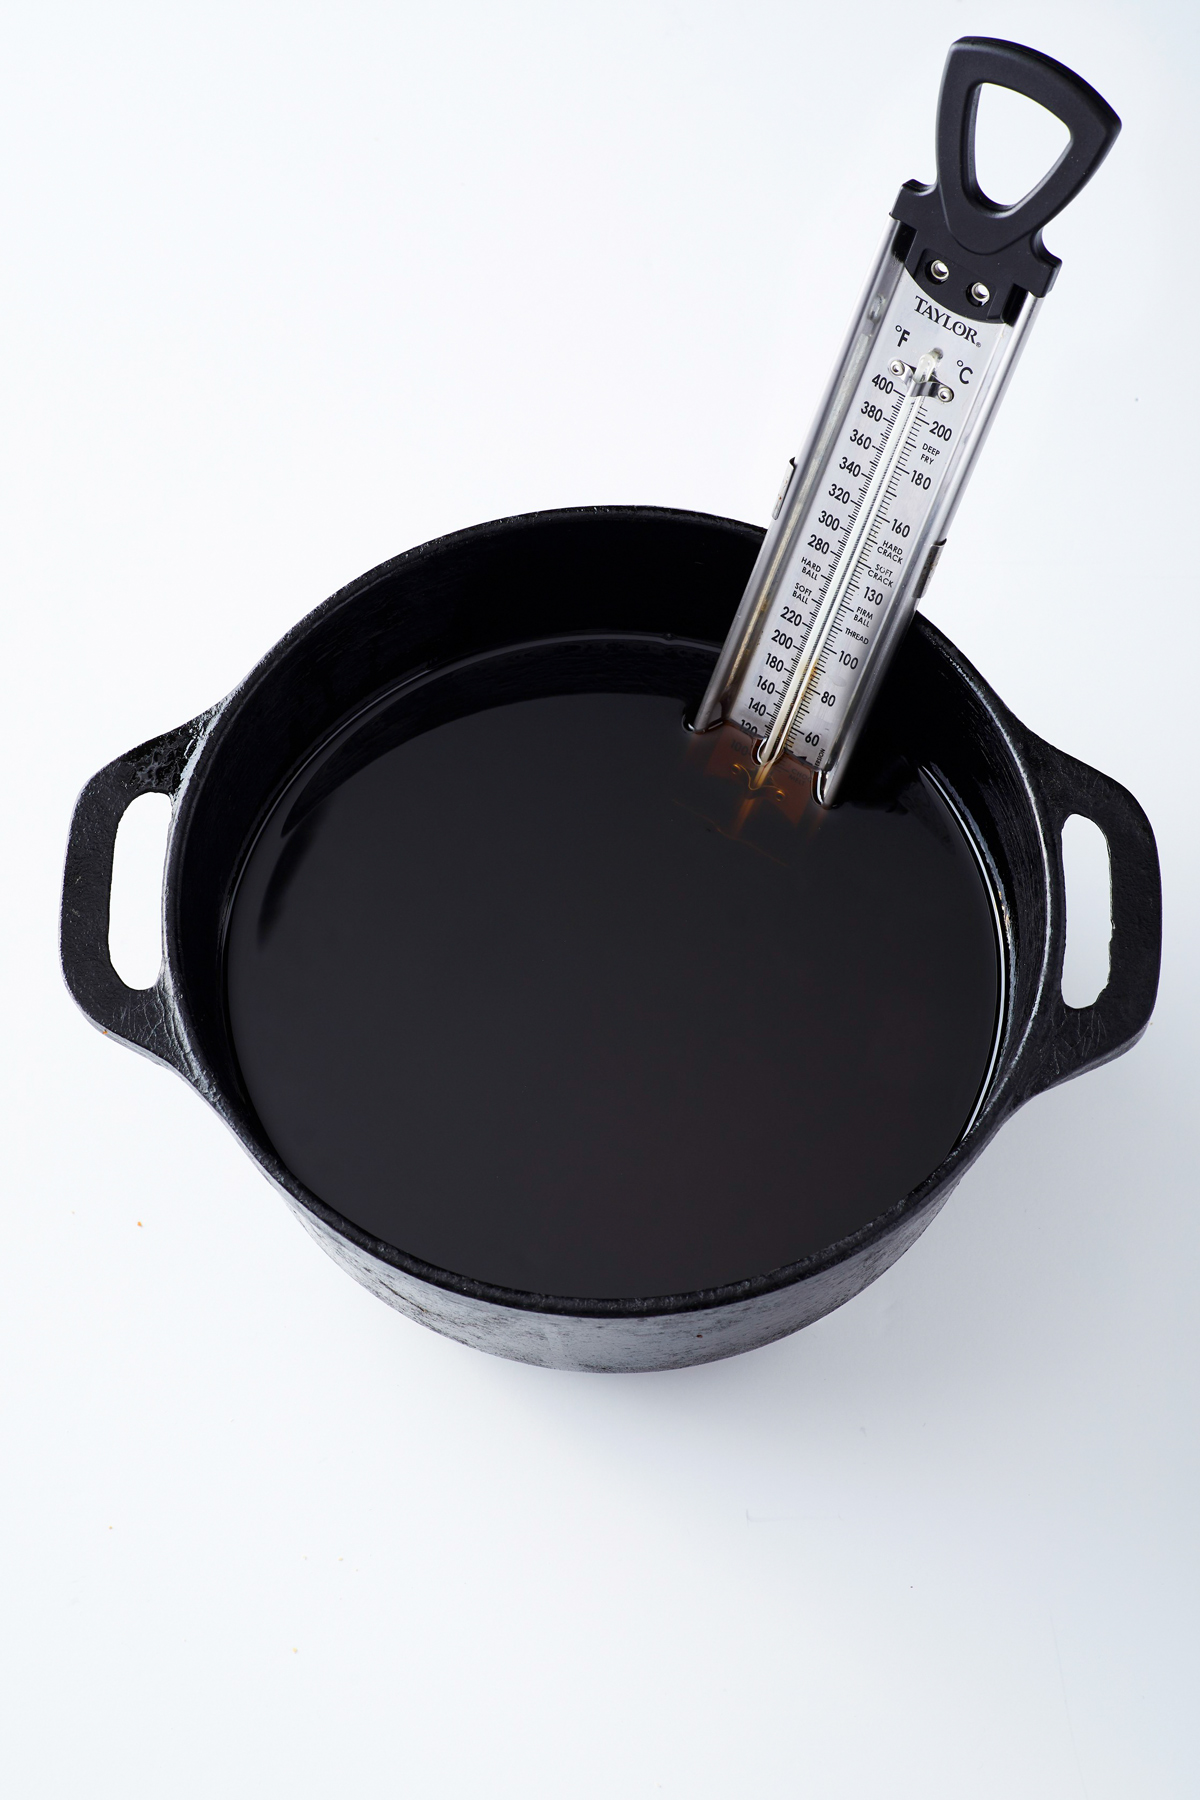 deep fry thermometer